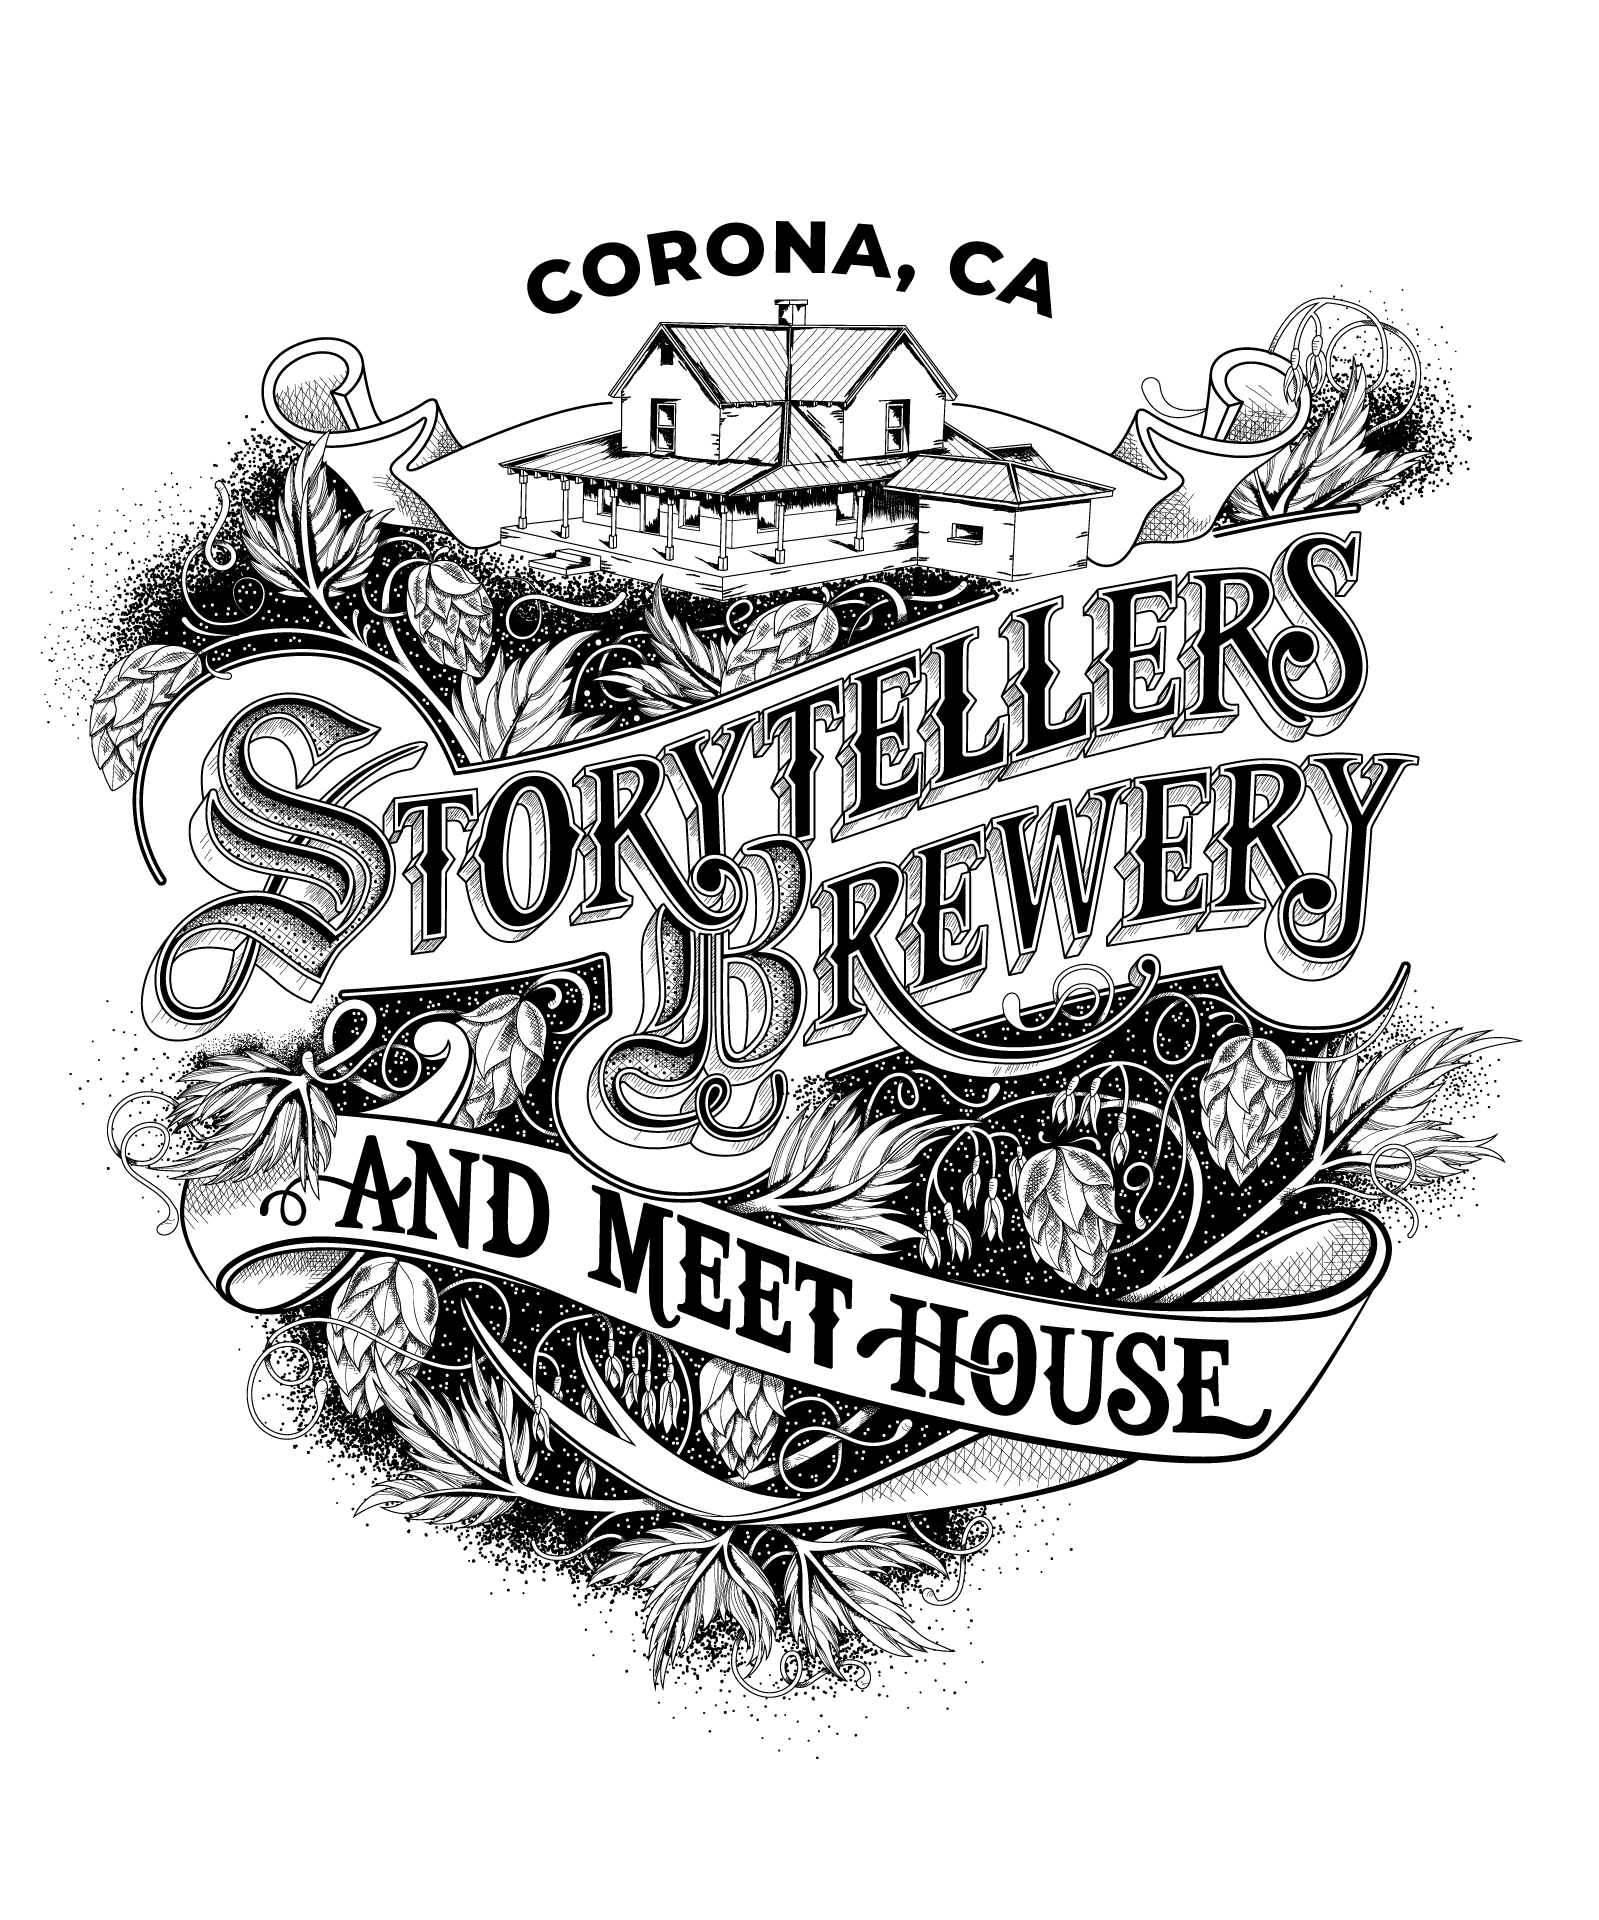 Storytellers Brewery and Meet House